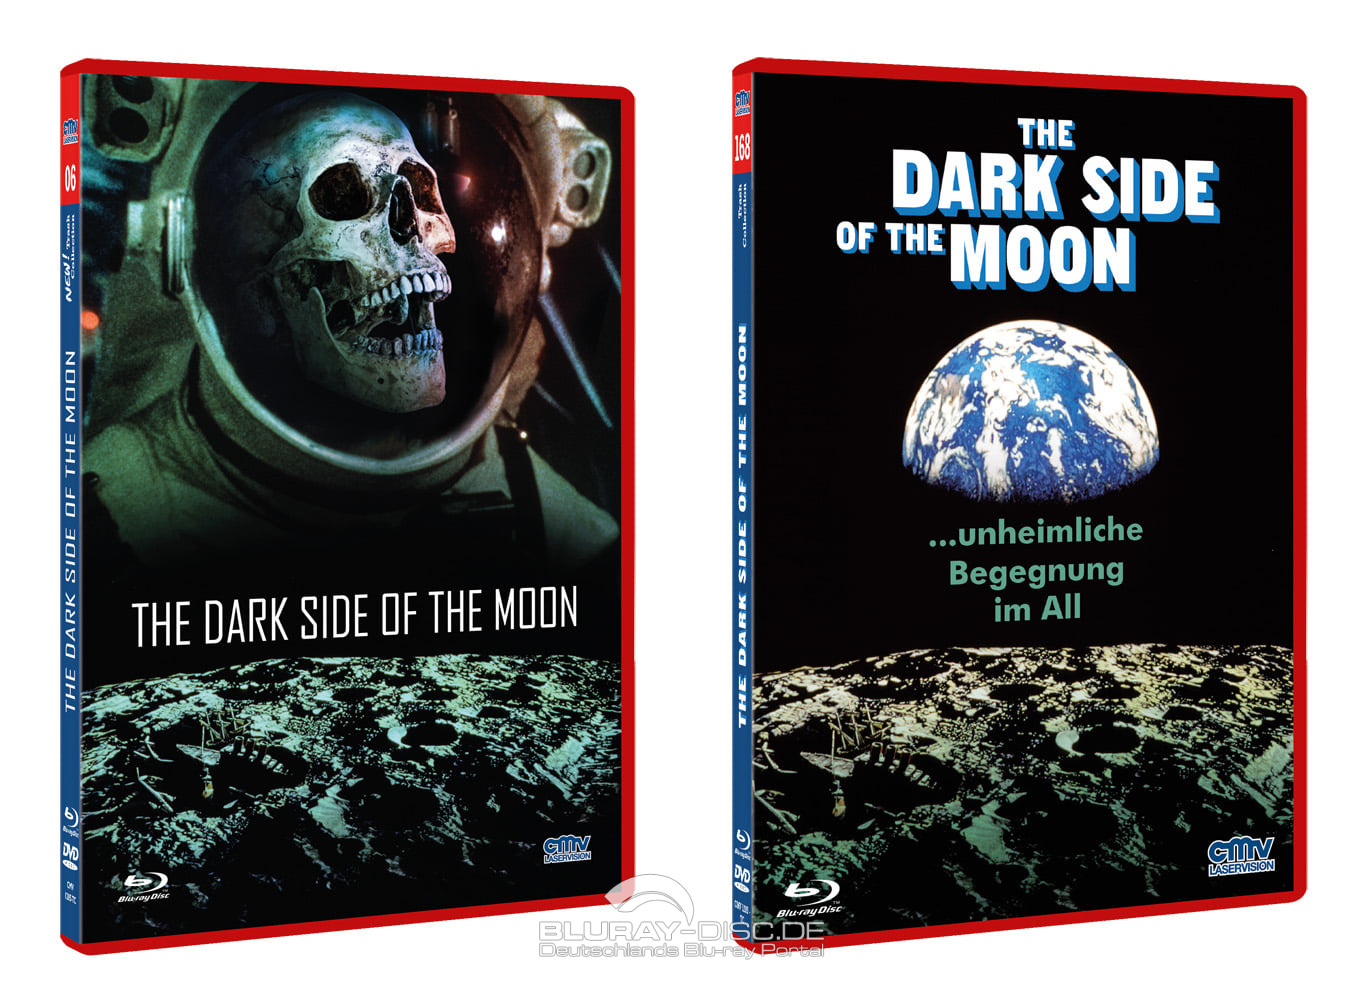 The_Dark_Side_of_the_Moon_Galerie_Trash_Collection.jpg